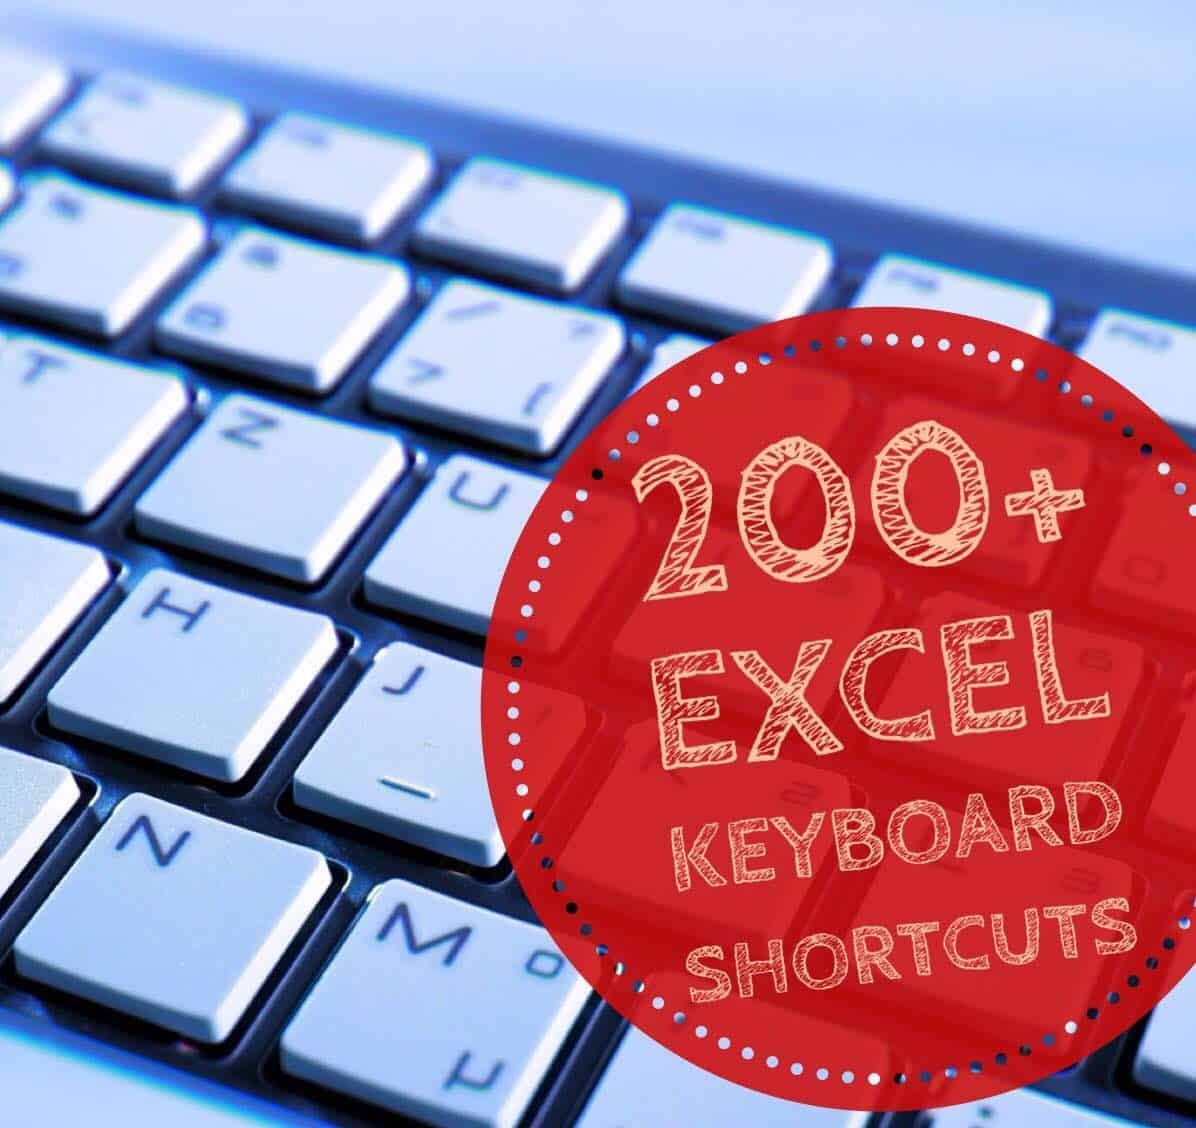 200+ Excel Keyboard Shortcuts